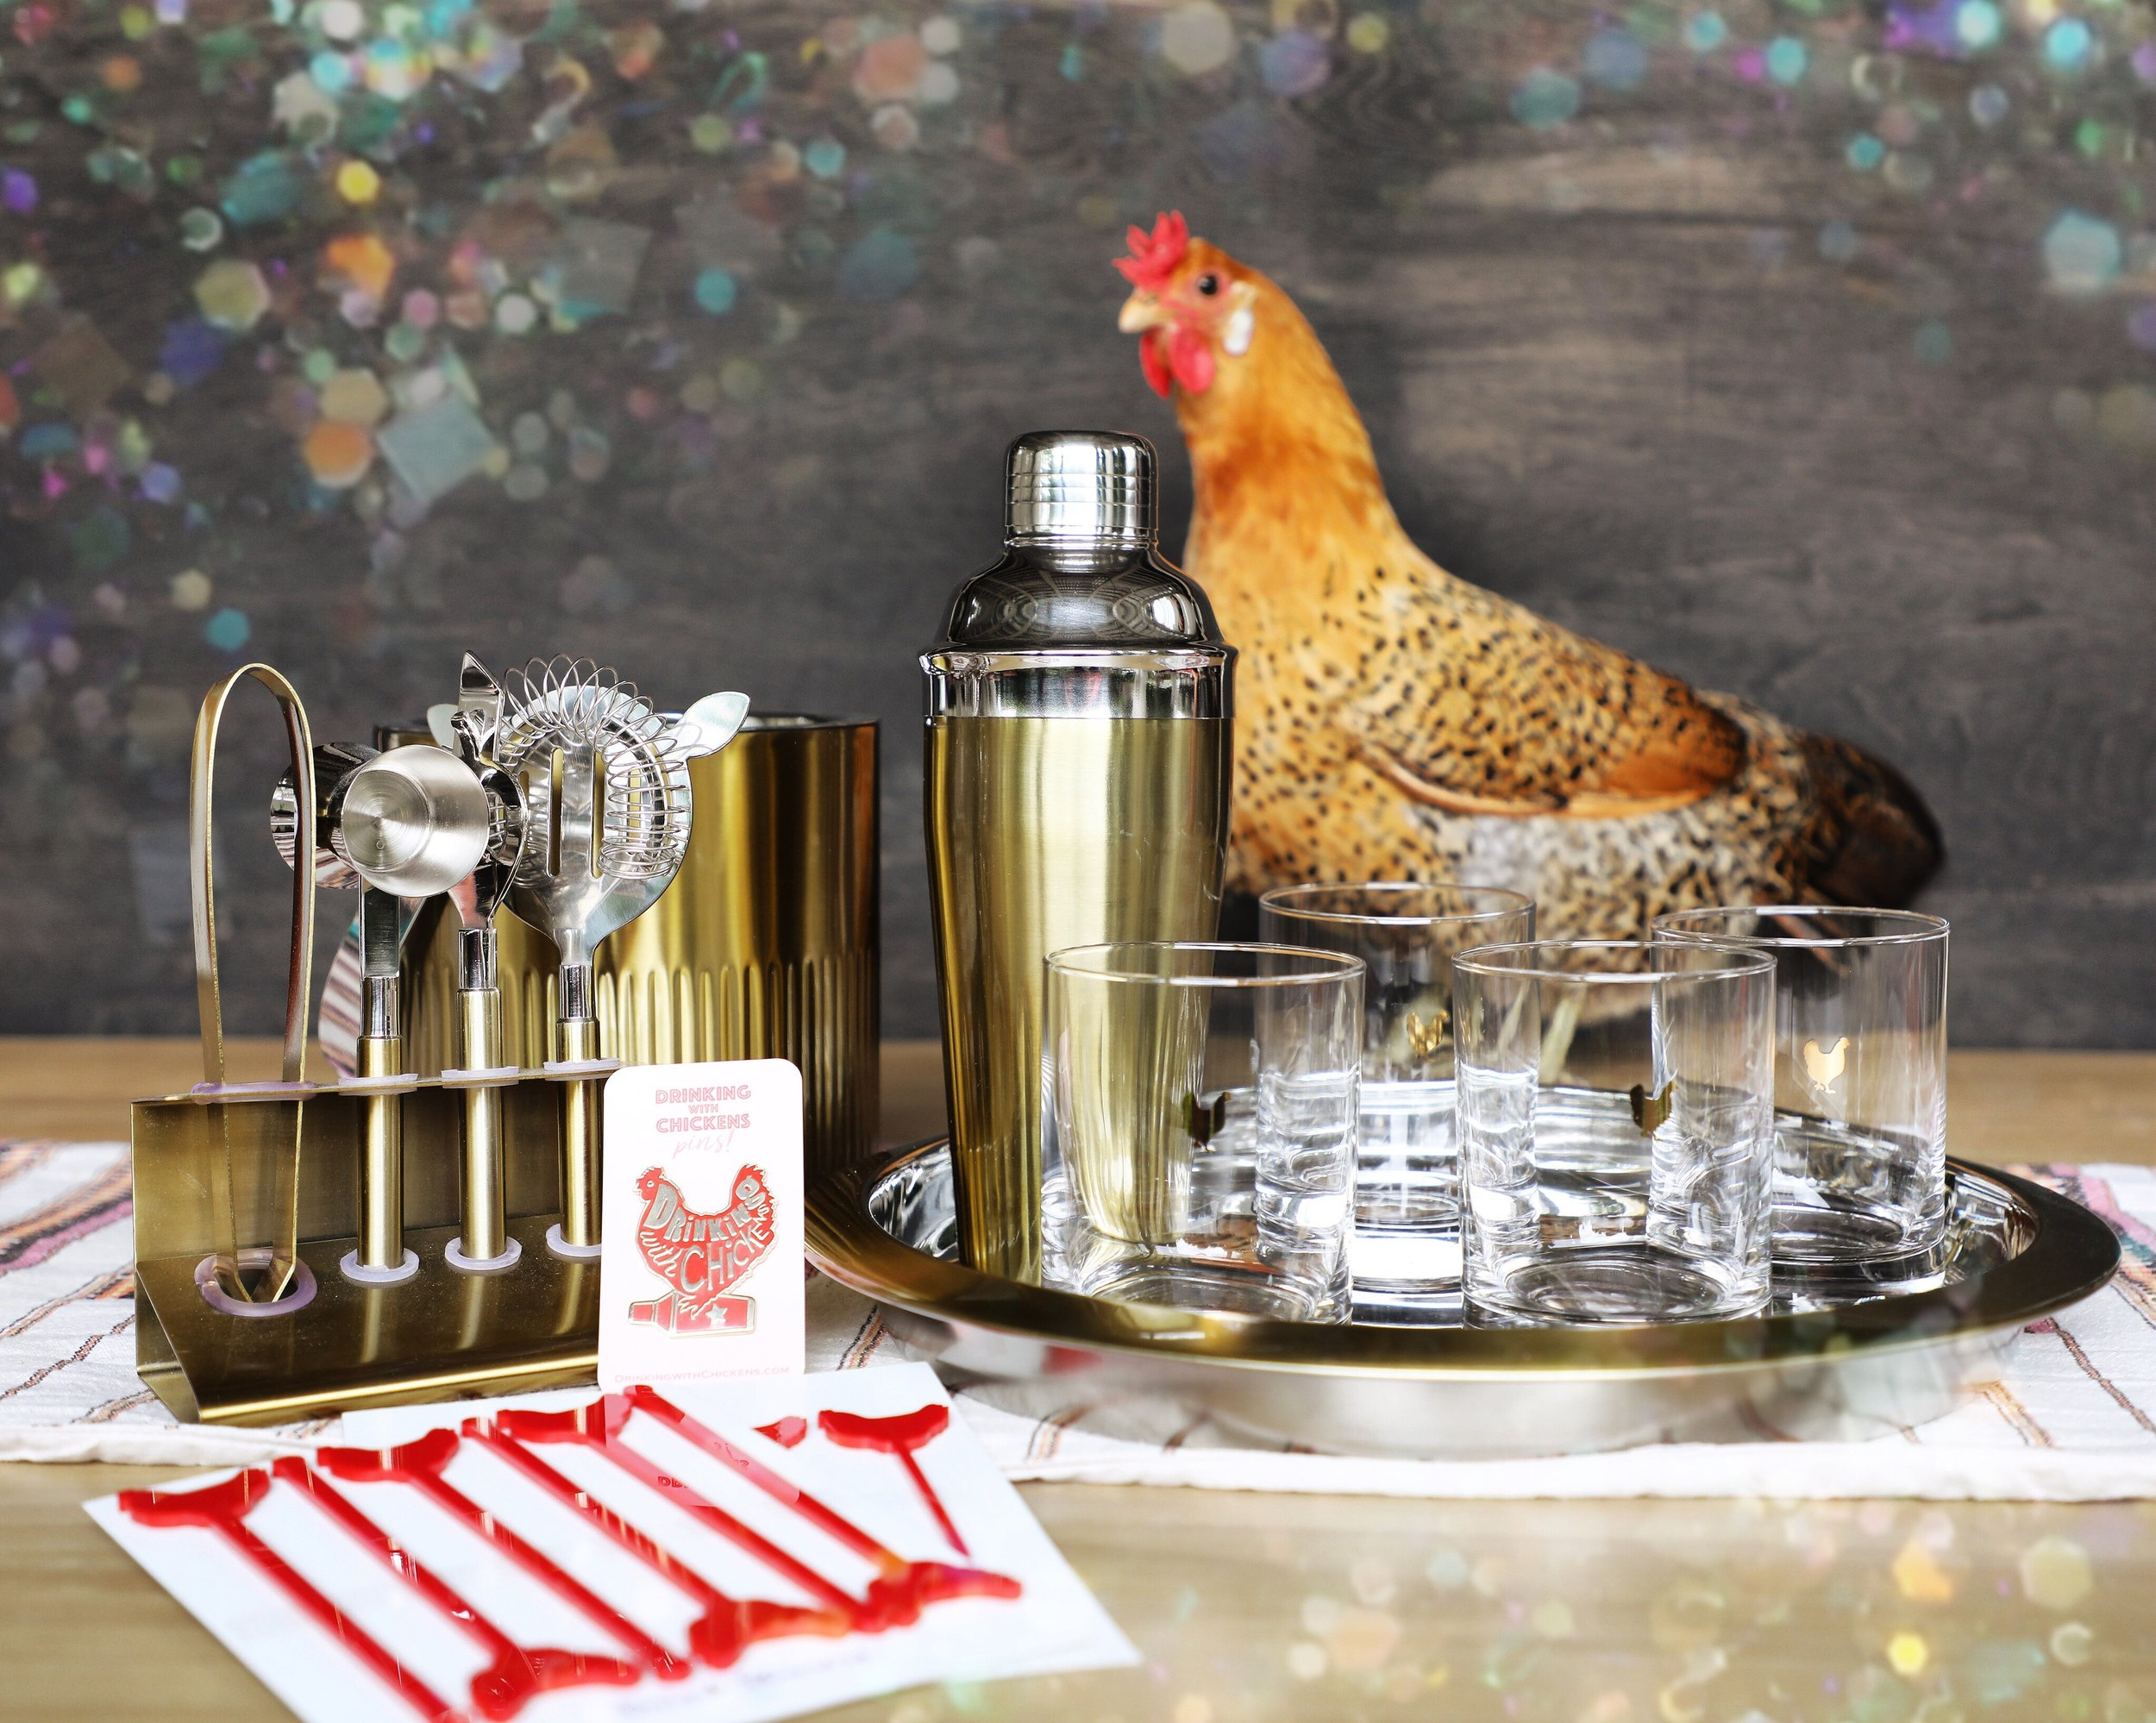 National Drinking with Chickens Day giveaway | drinkingwithchickens.com